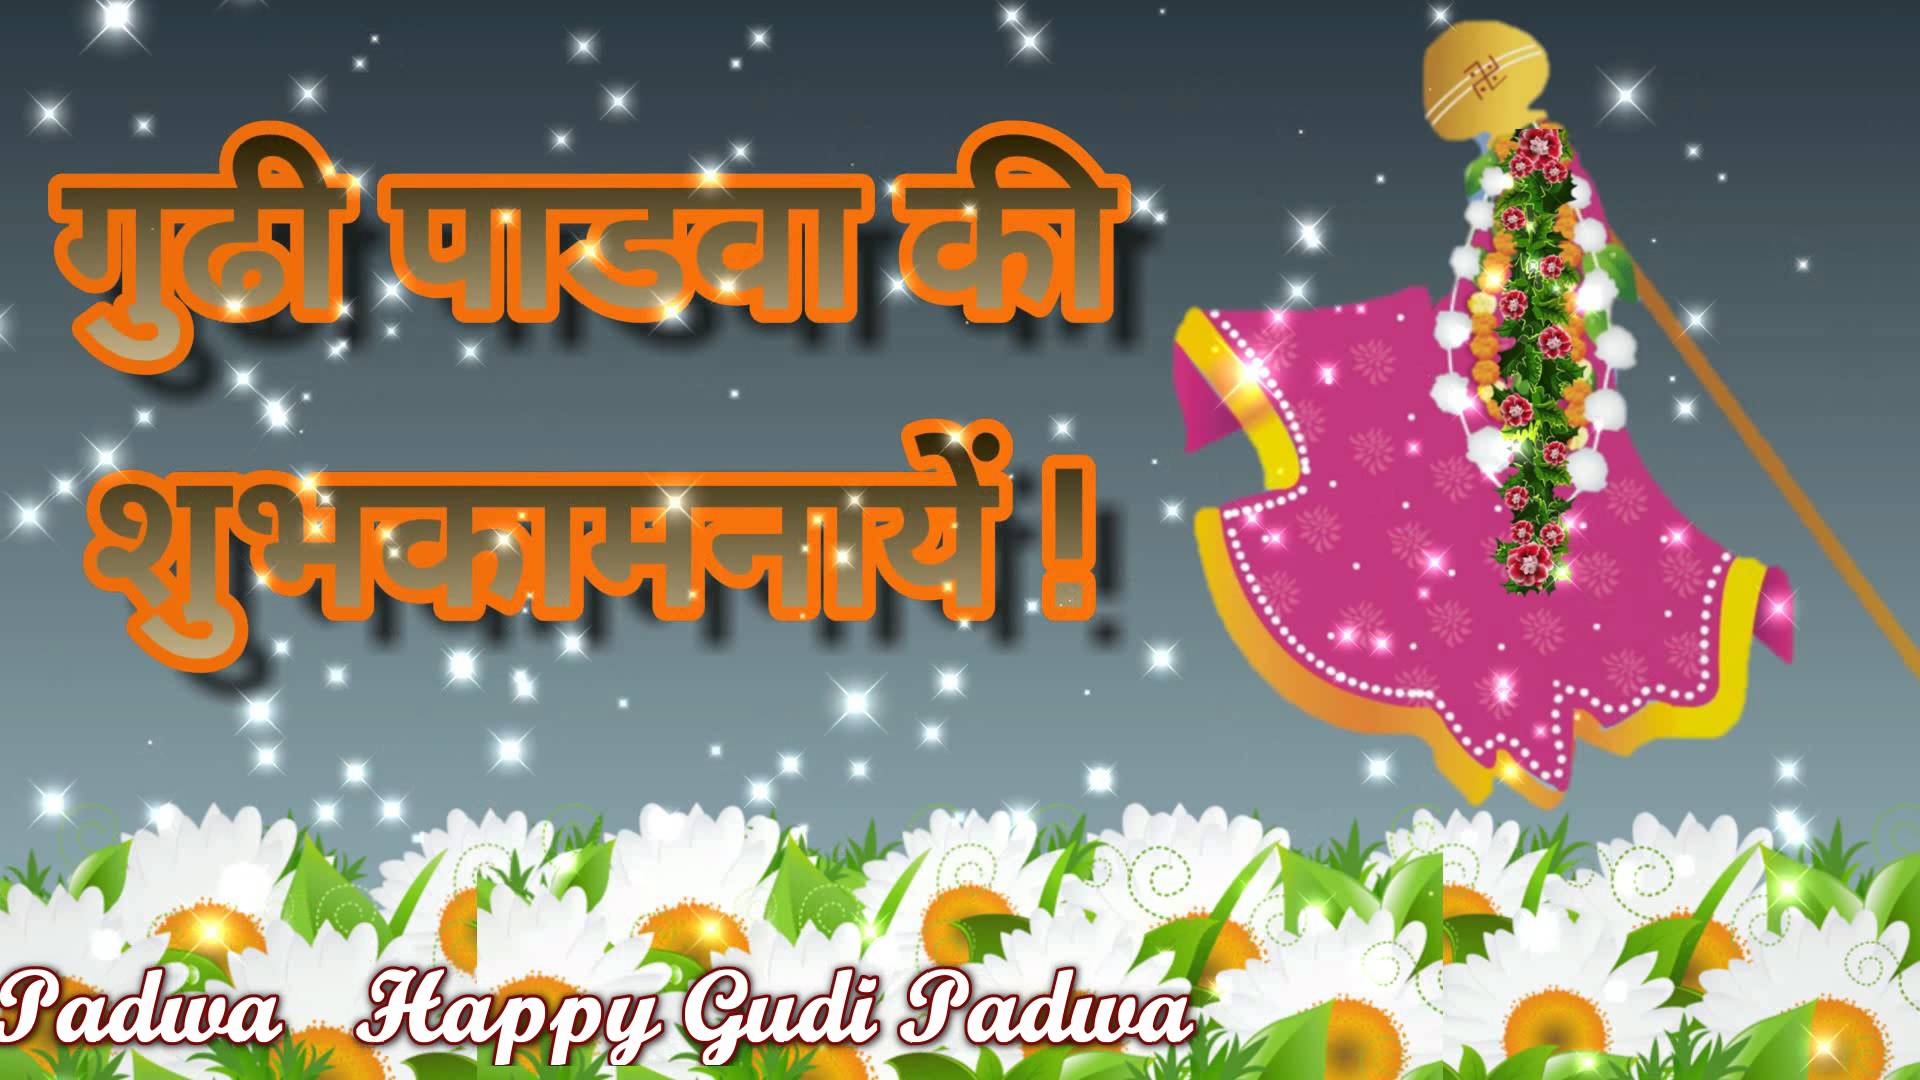 gudi padwa wallpapers free download Swaggy